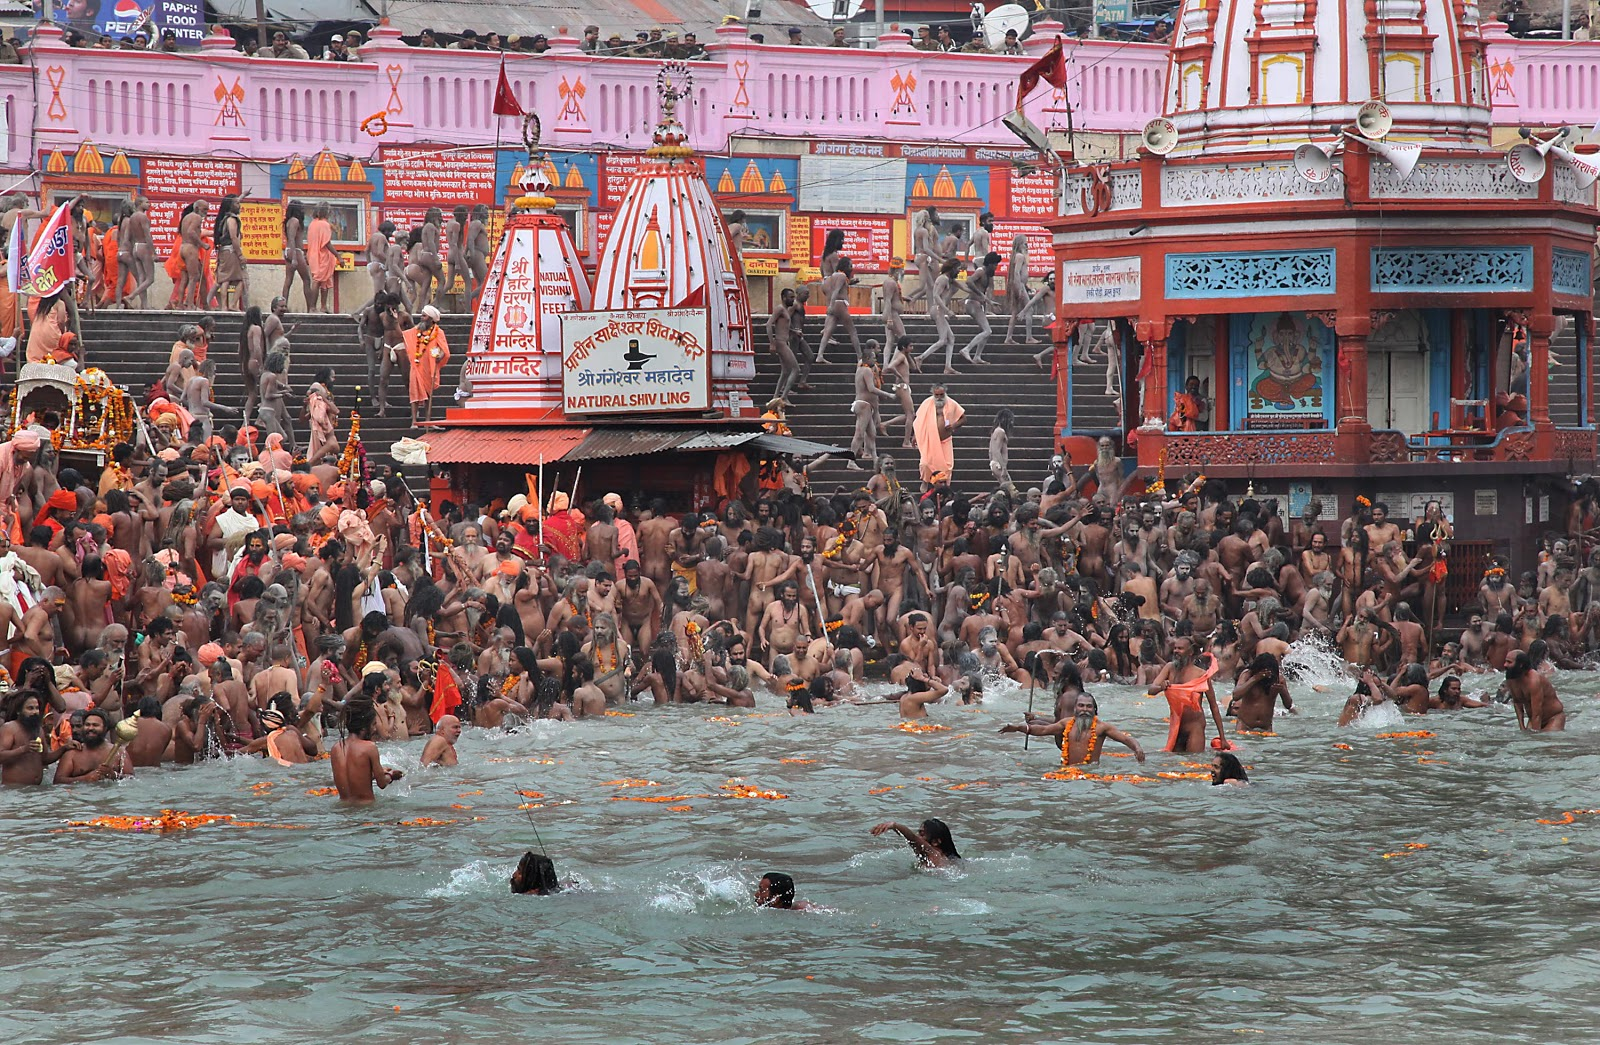 Allahabad - A City In Uttar Pradesh Immersed In The Pious Milieu Of Spirituality